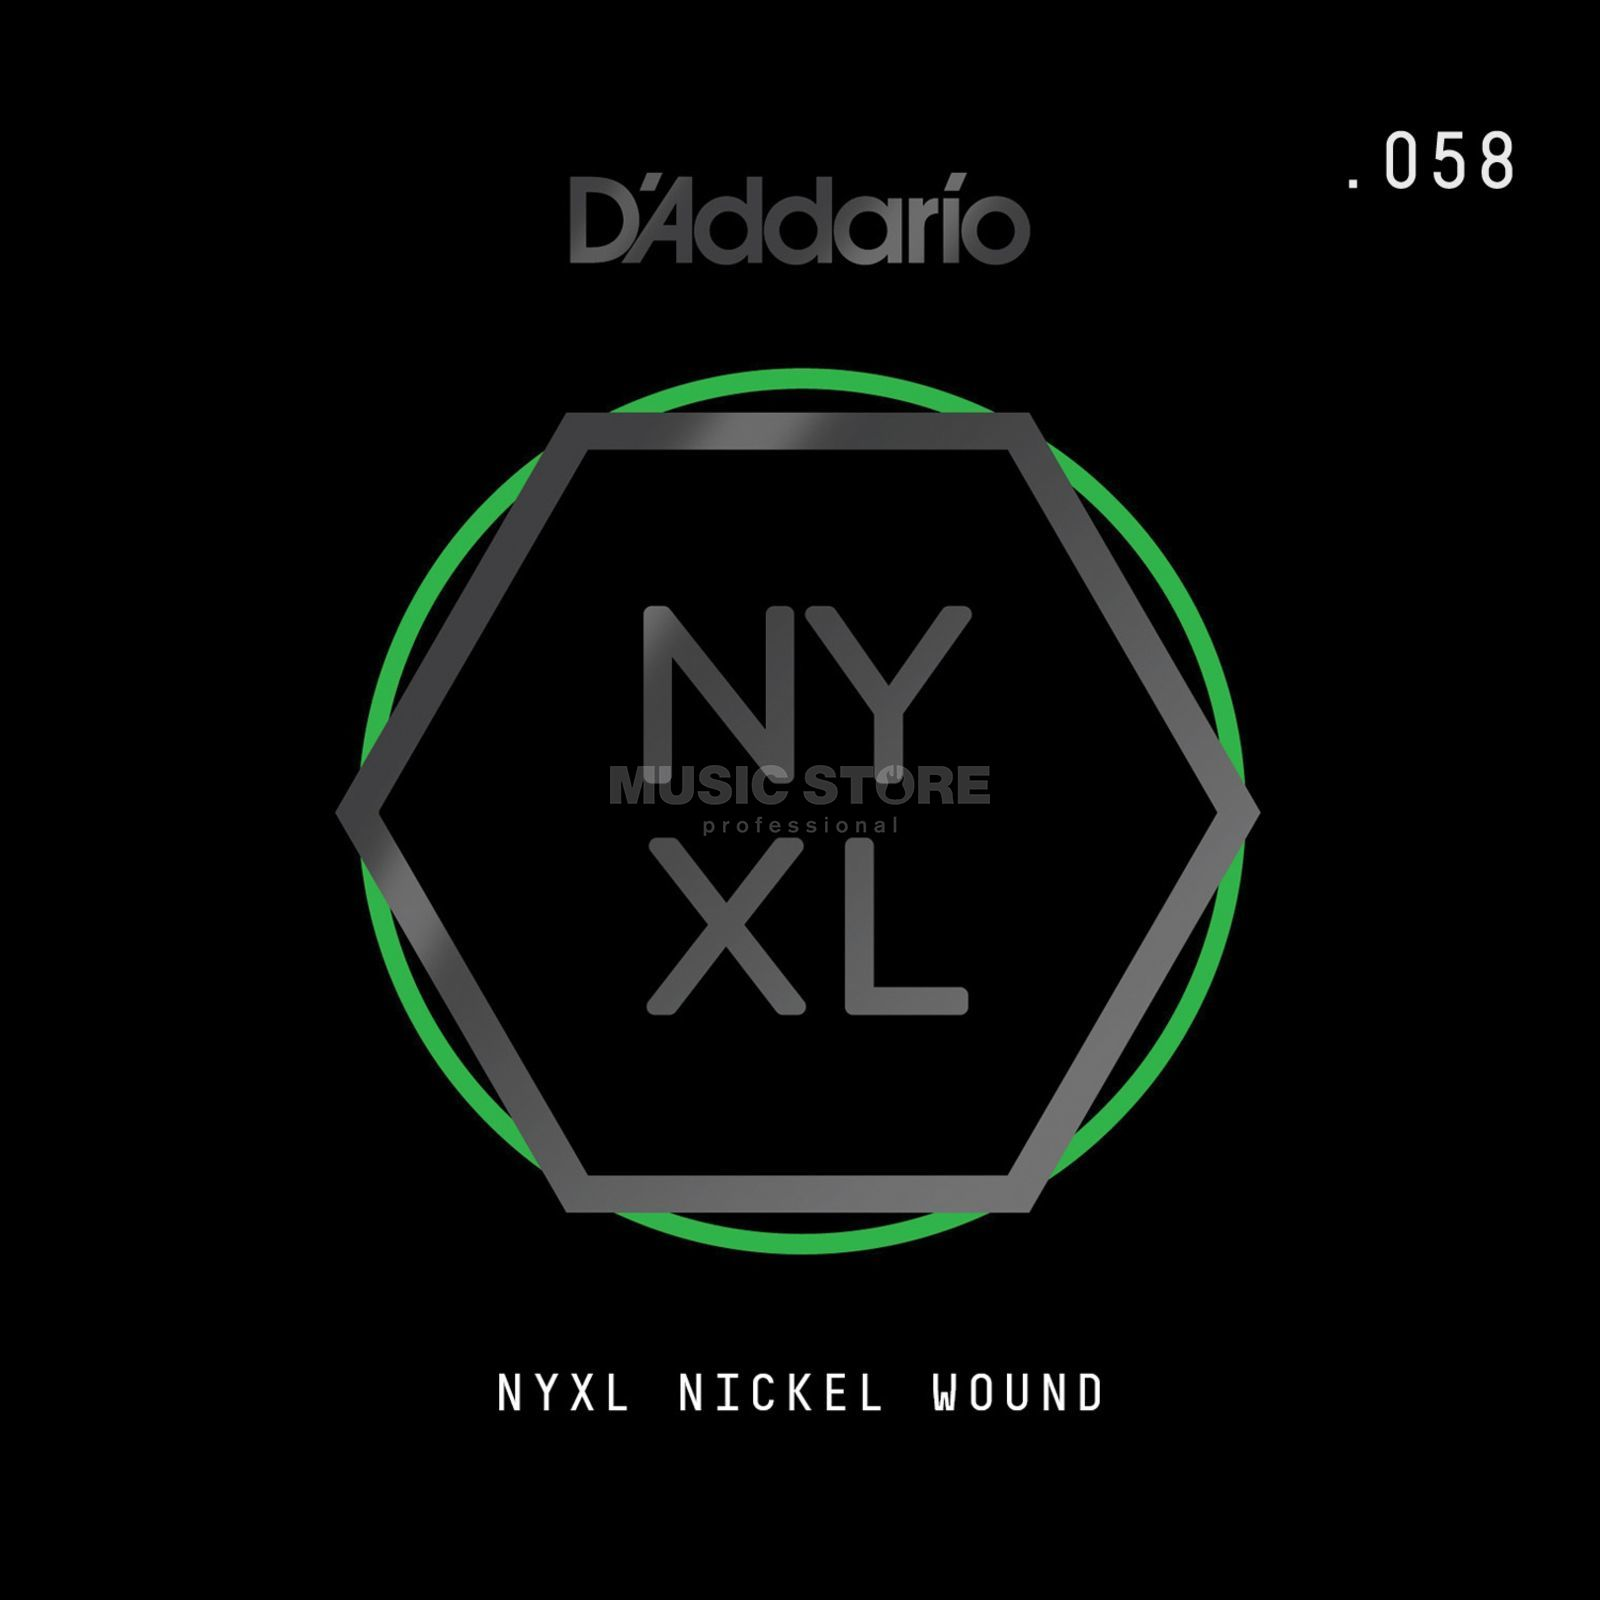 D'Addario NYNW058 Single String Nickel Wound Product Image